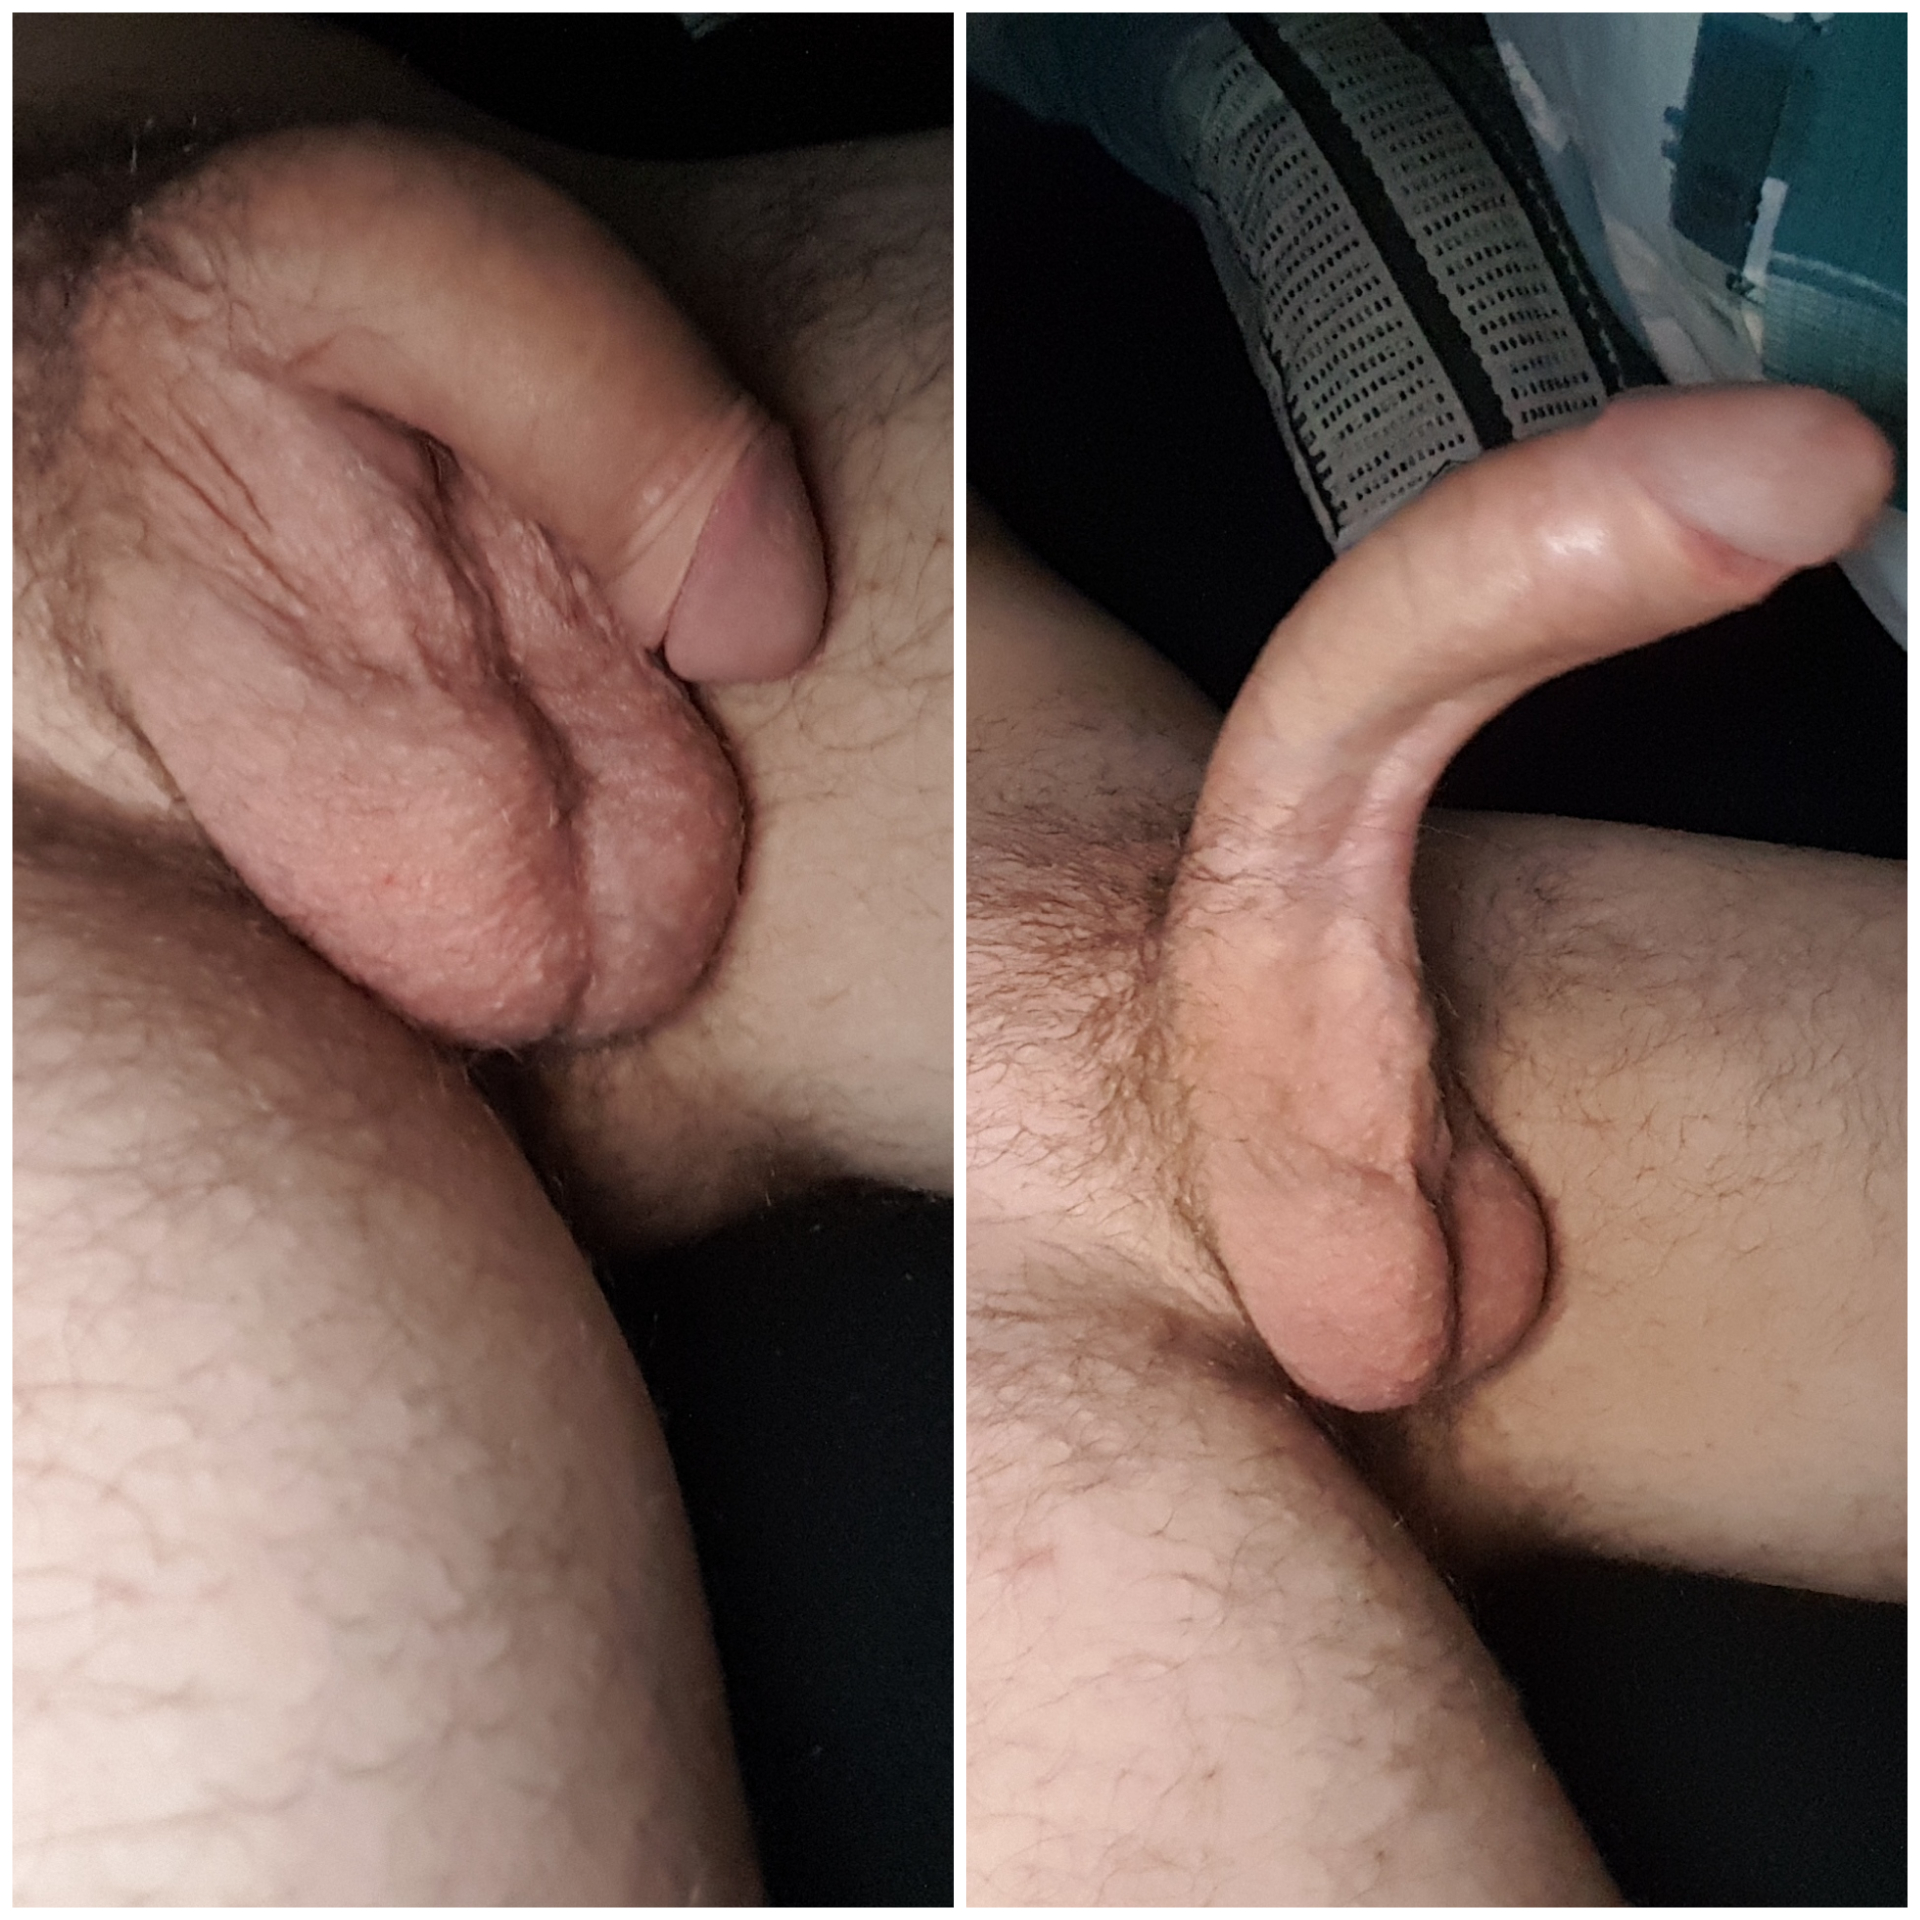 Flaccid and erect cock